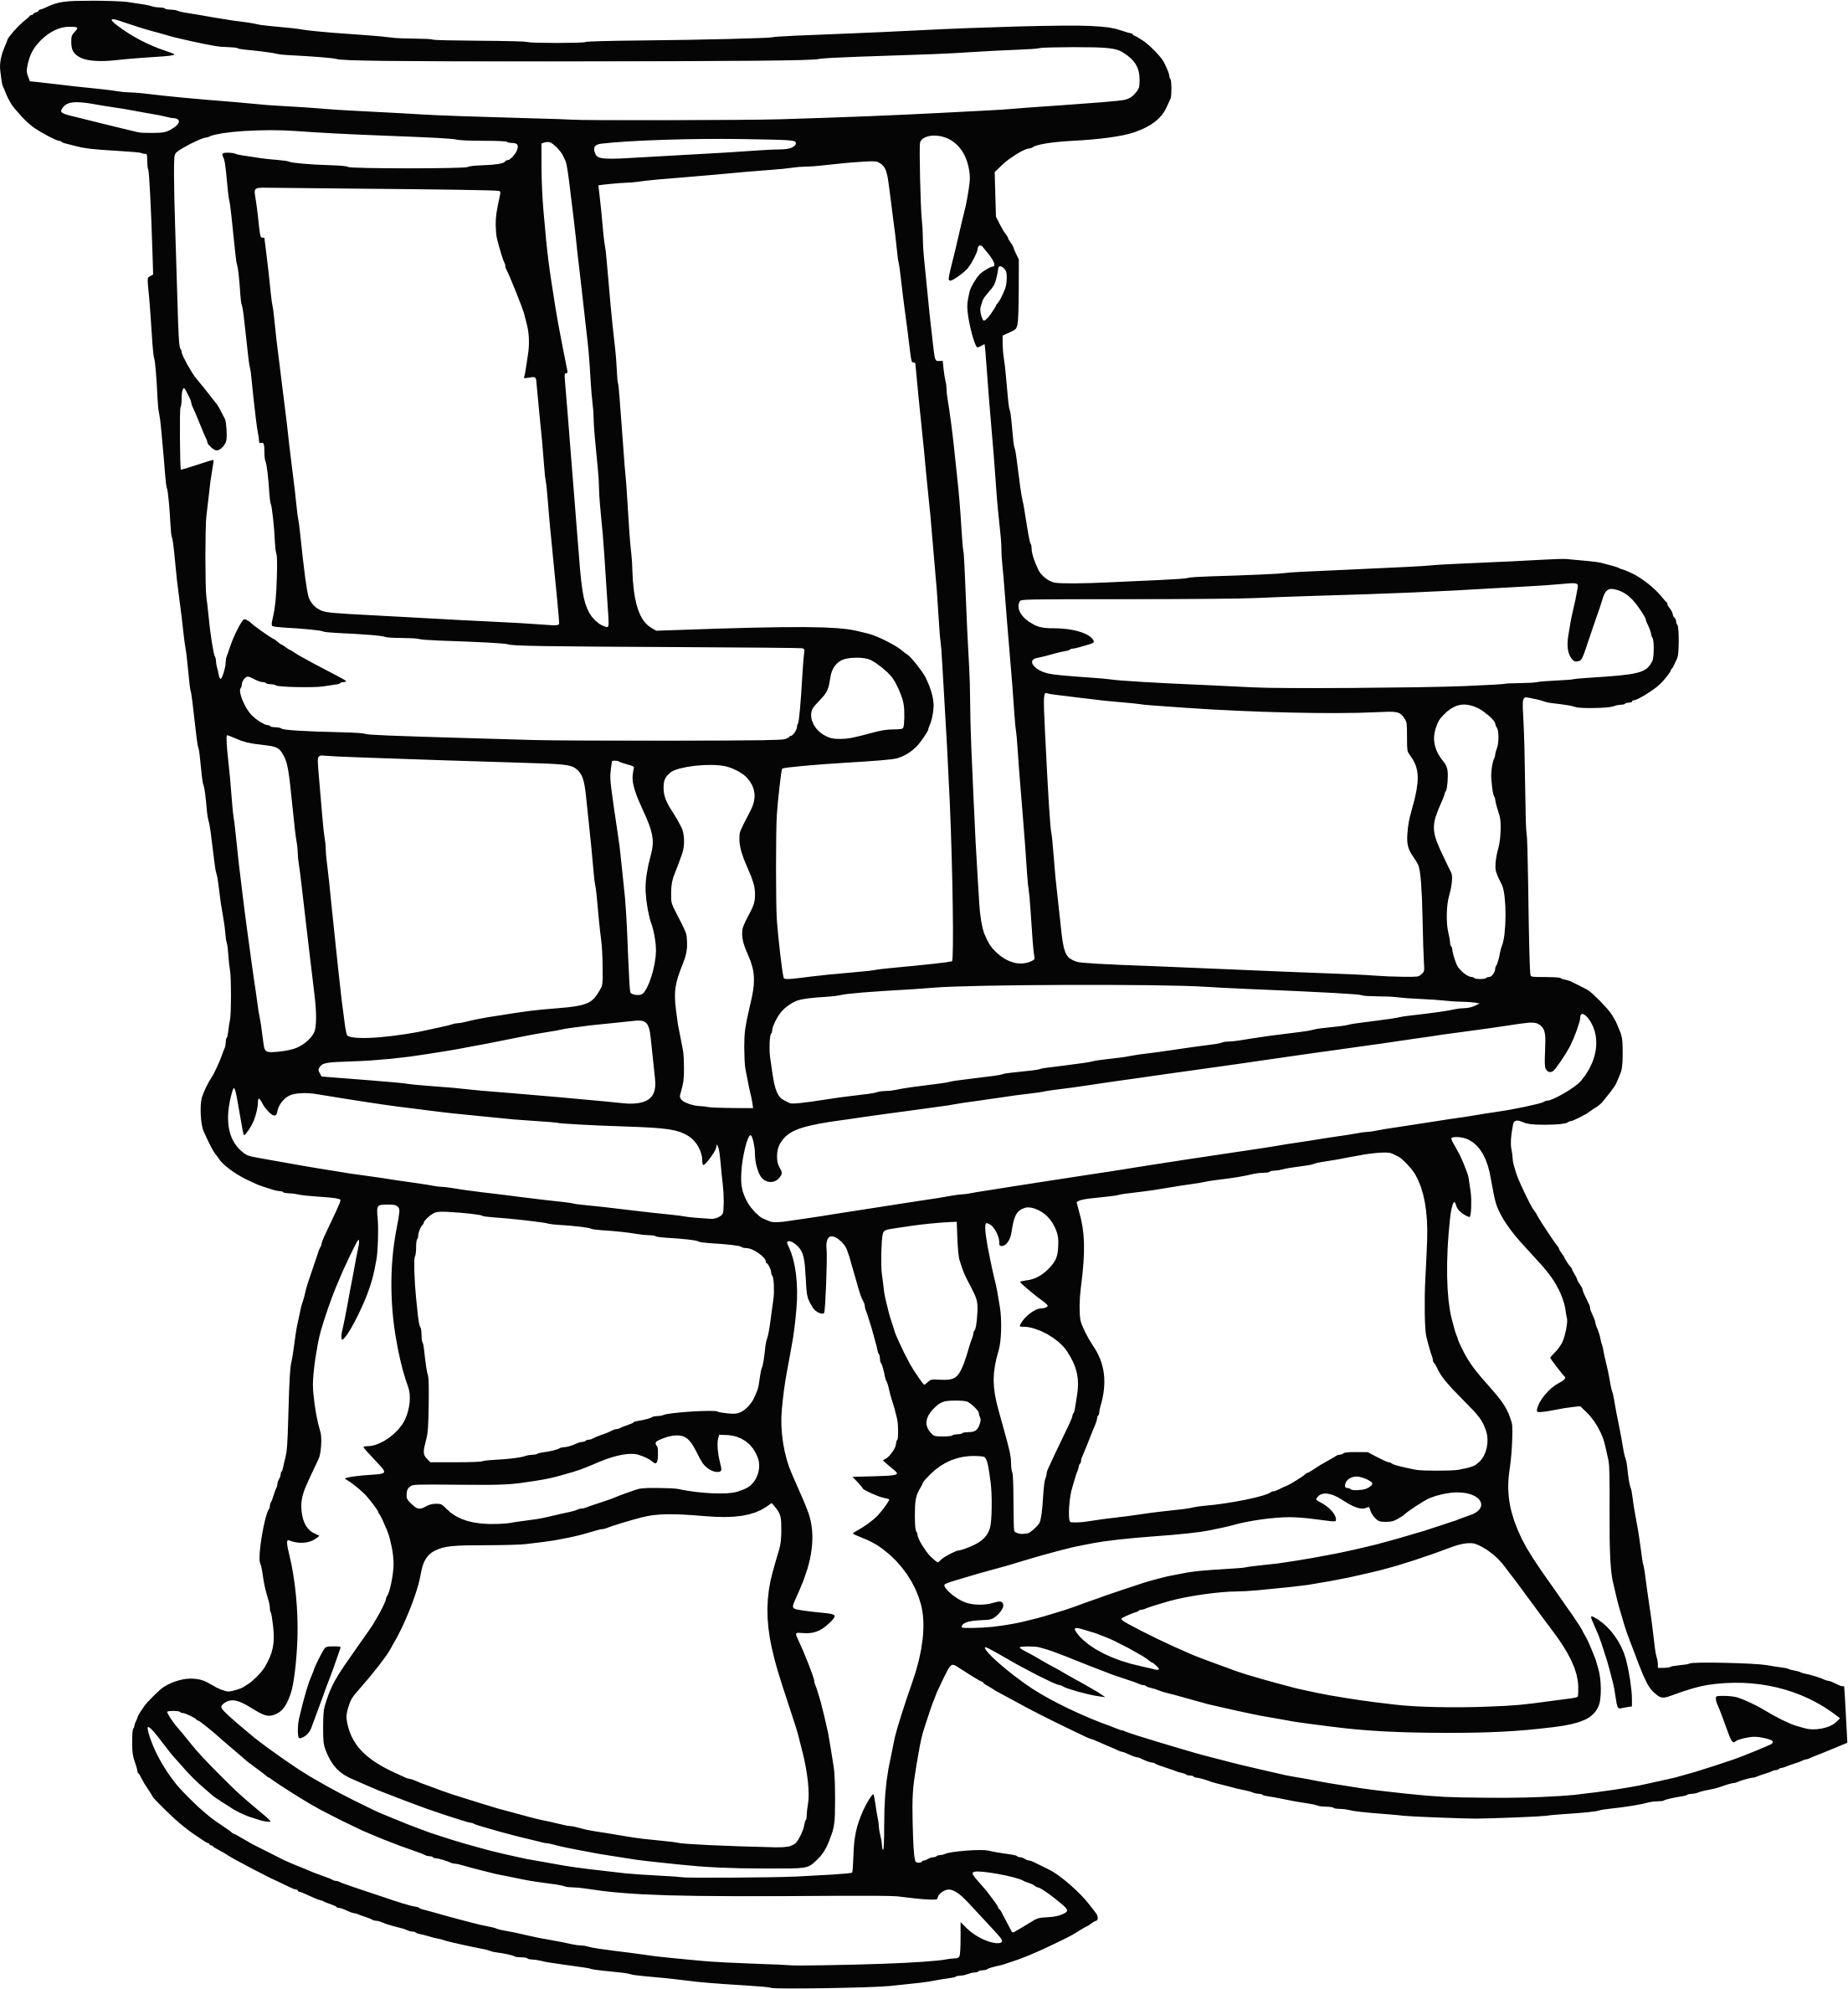 Rocking chair 3 (outline) by Firkin